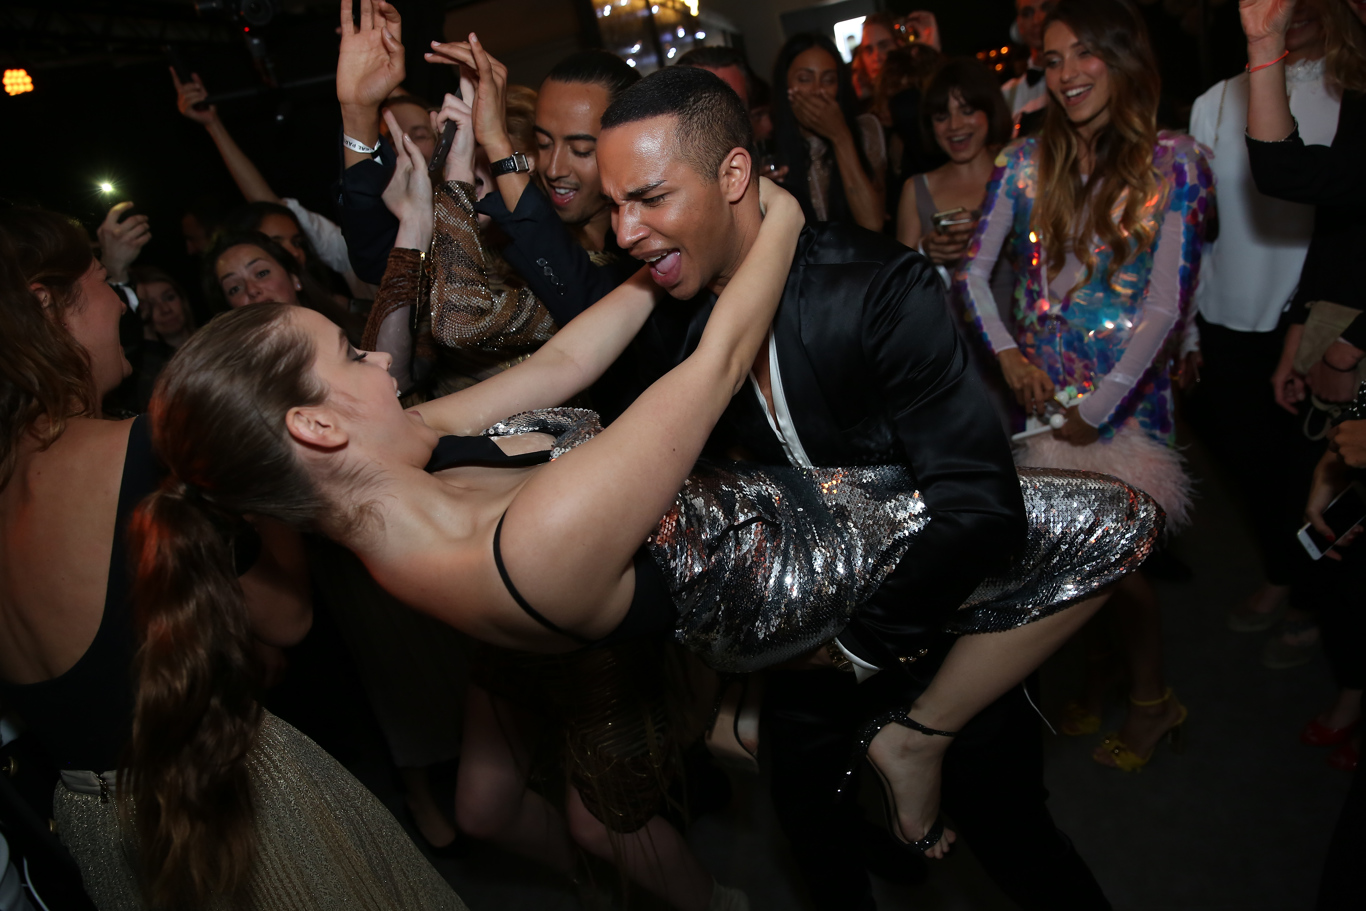 Olivier Rousteing and Barbara Palvin at the L'OrŽal Paris party during the 70th Cannes Film Festival.